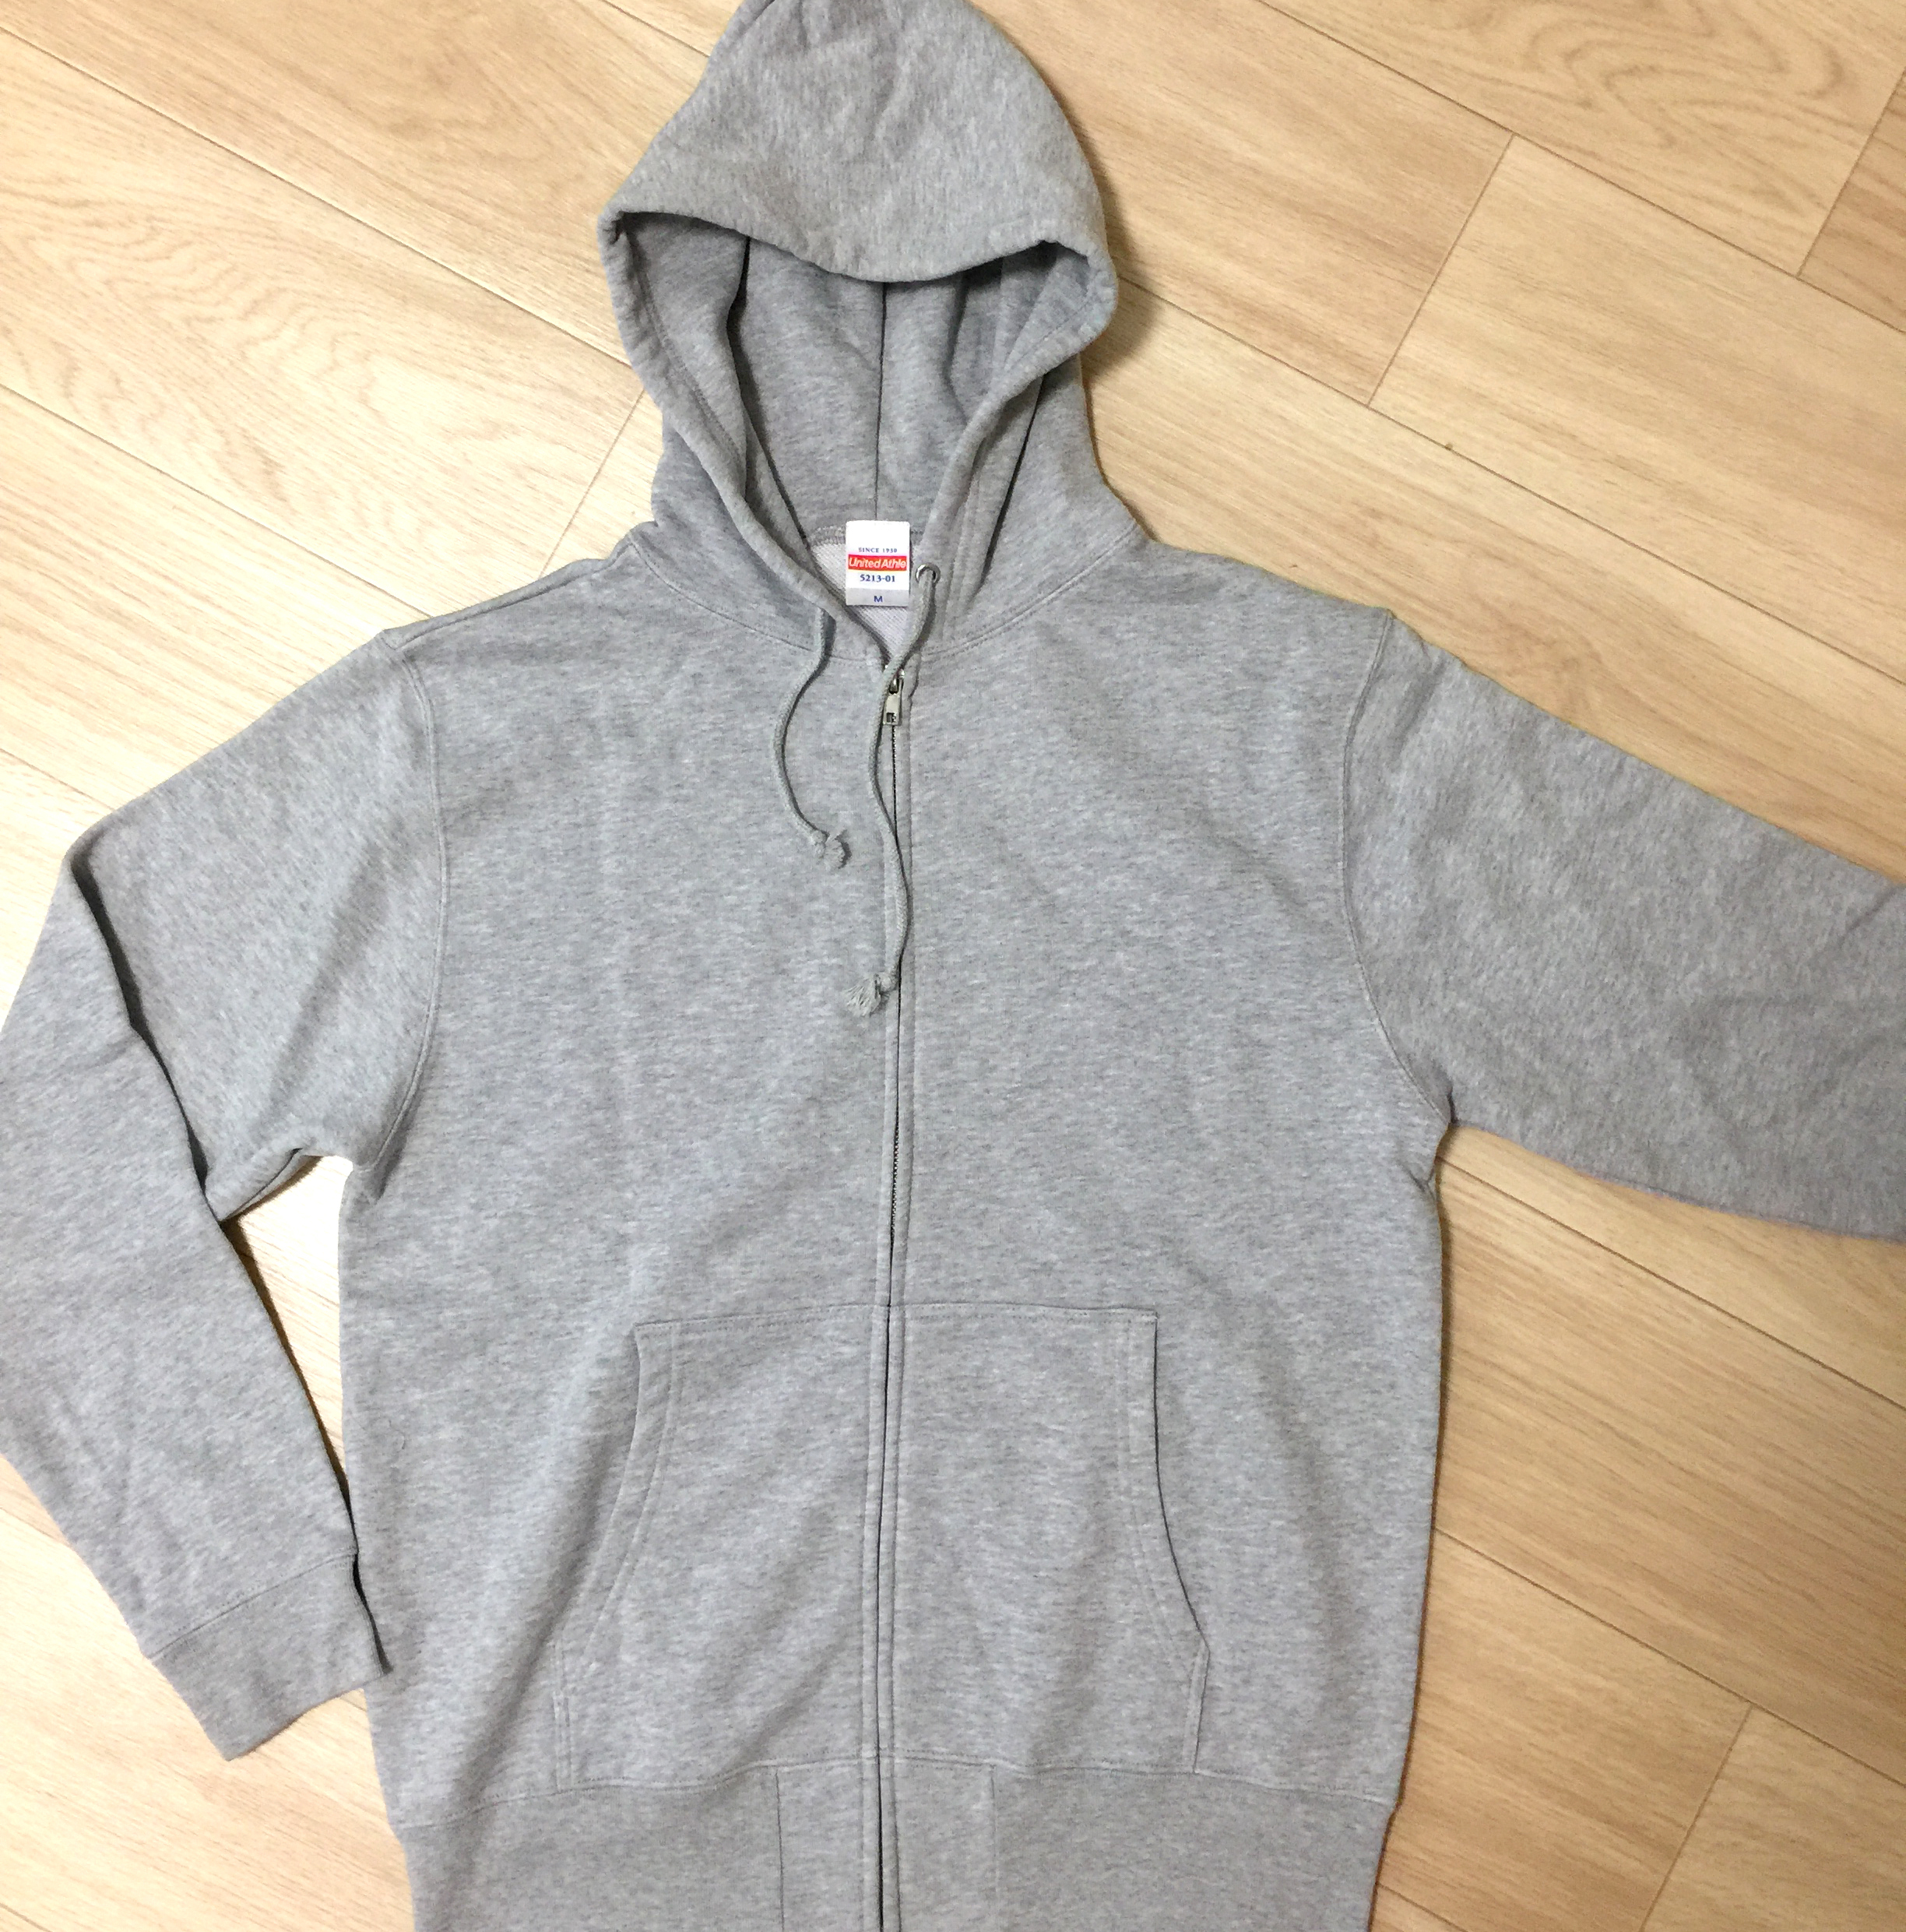 Charity Zip up Parker for Supporting SAVE TATTOOING (gray)